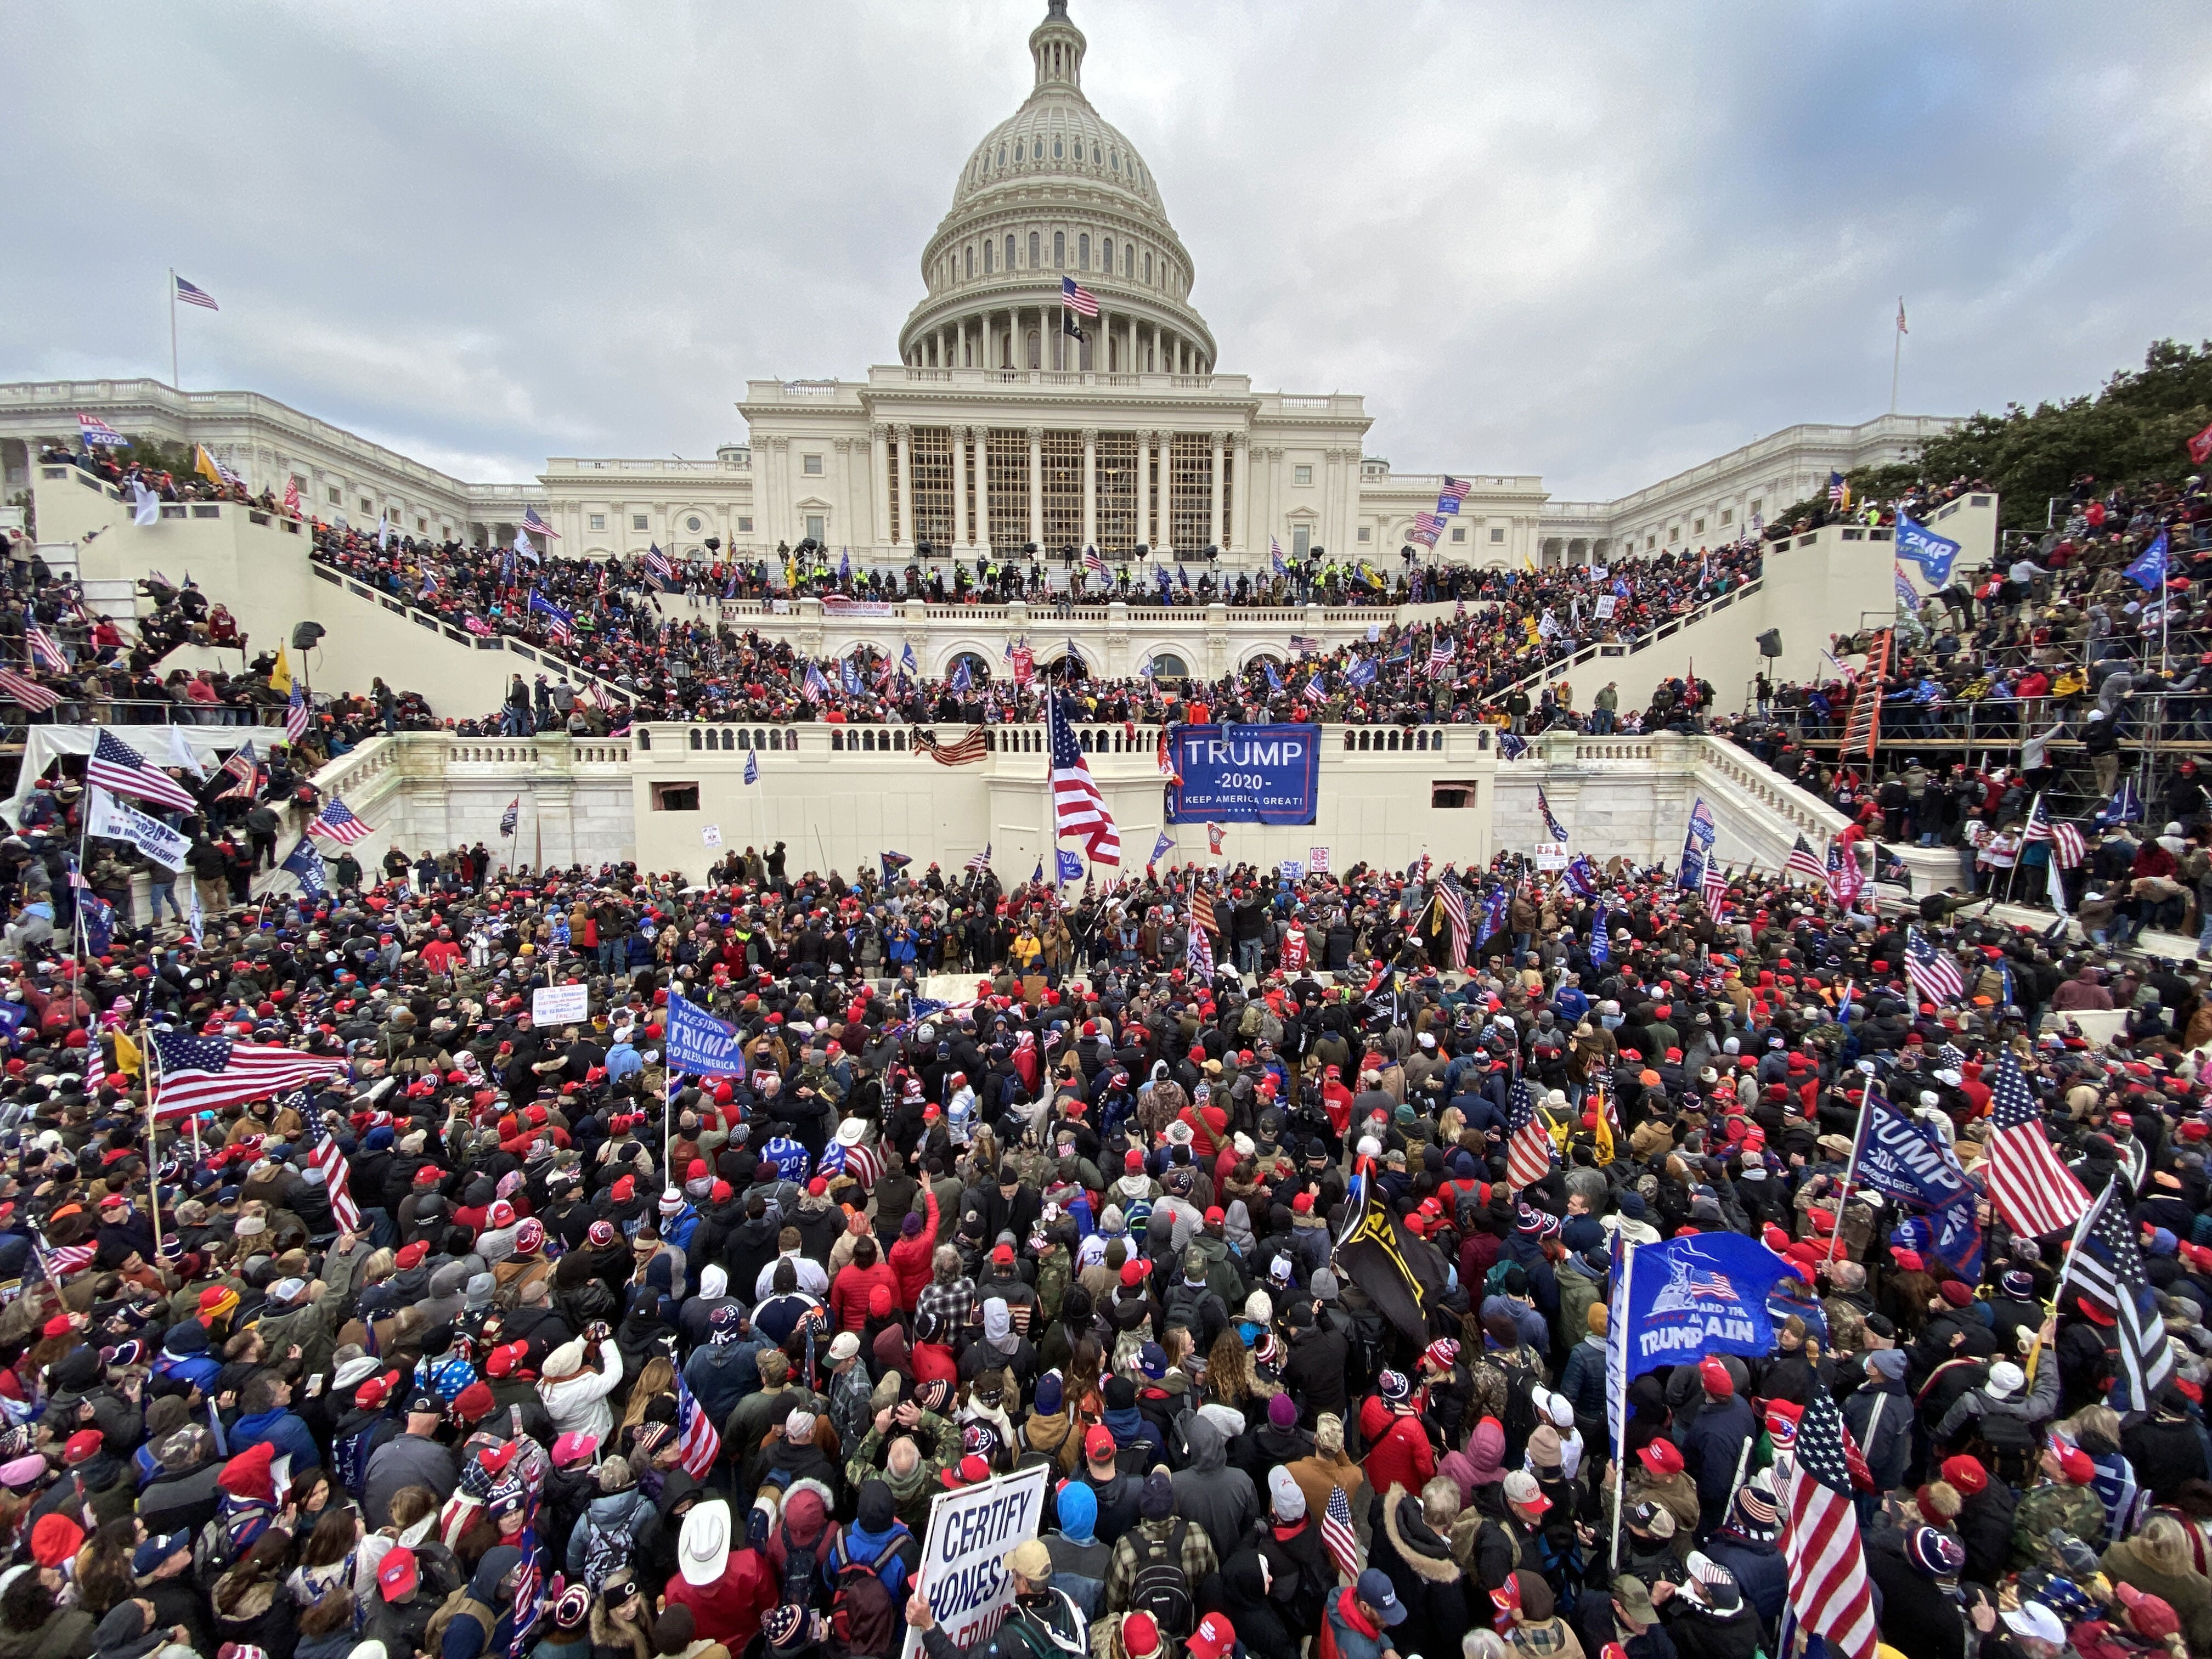 US Capitol Police whistleblower alleges leadership failures on January 6